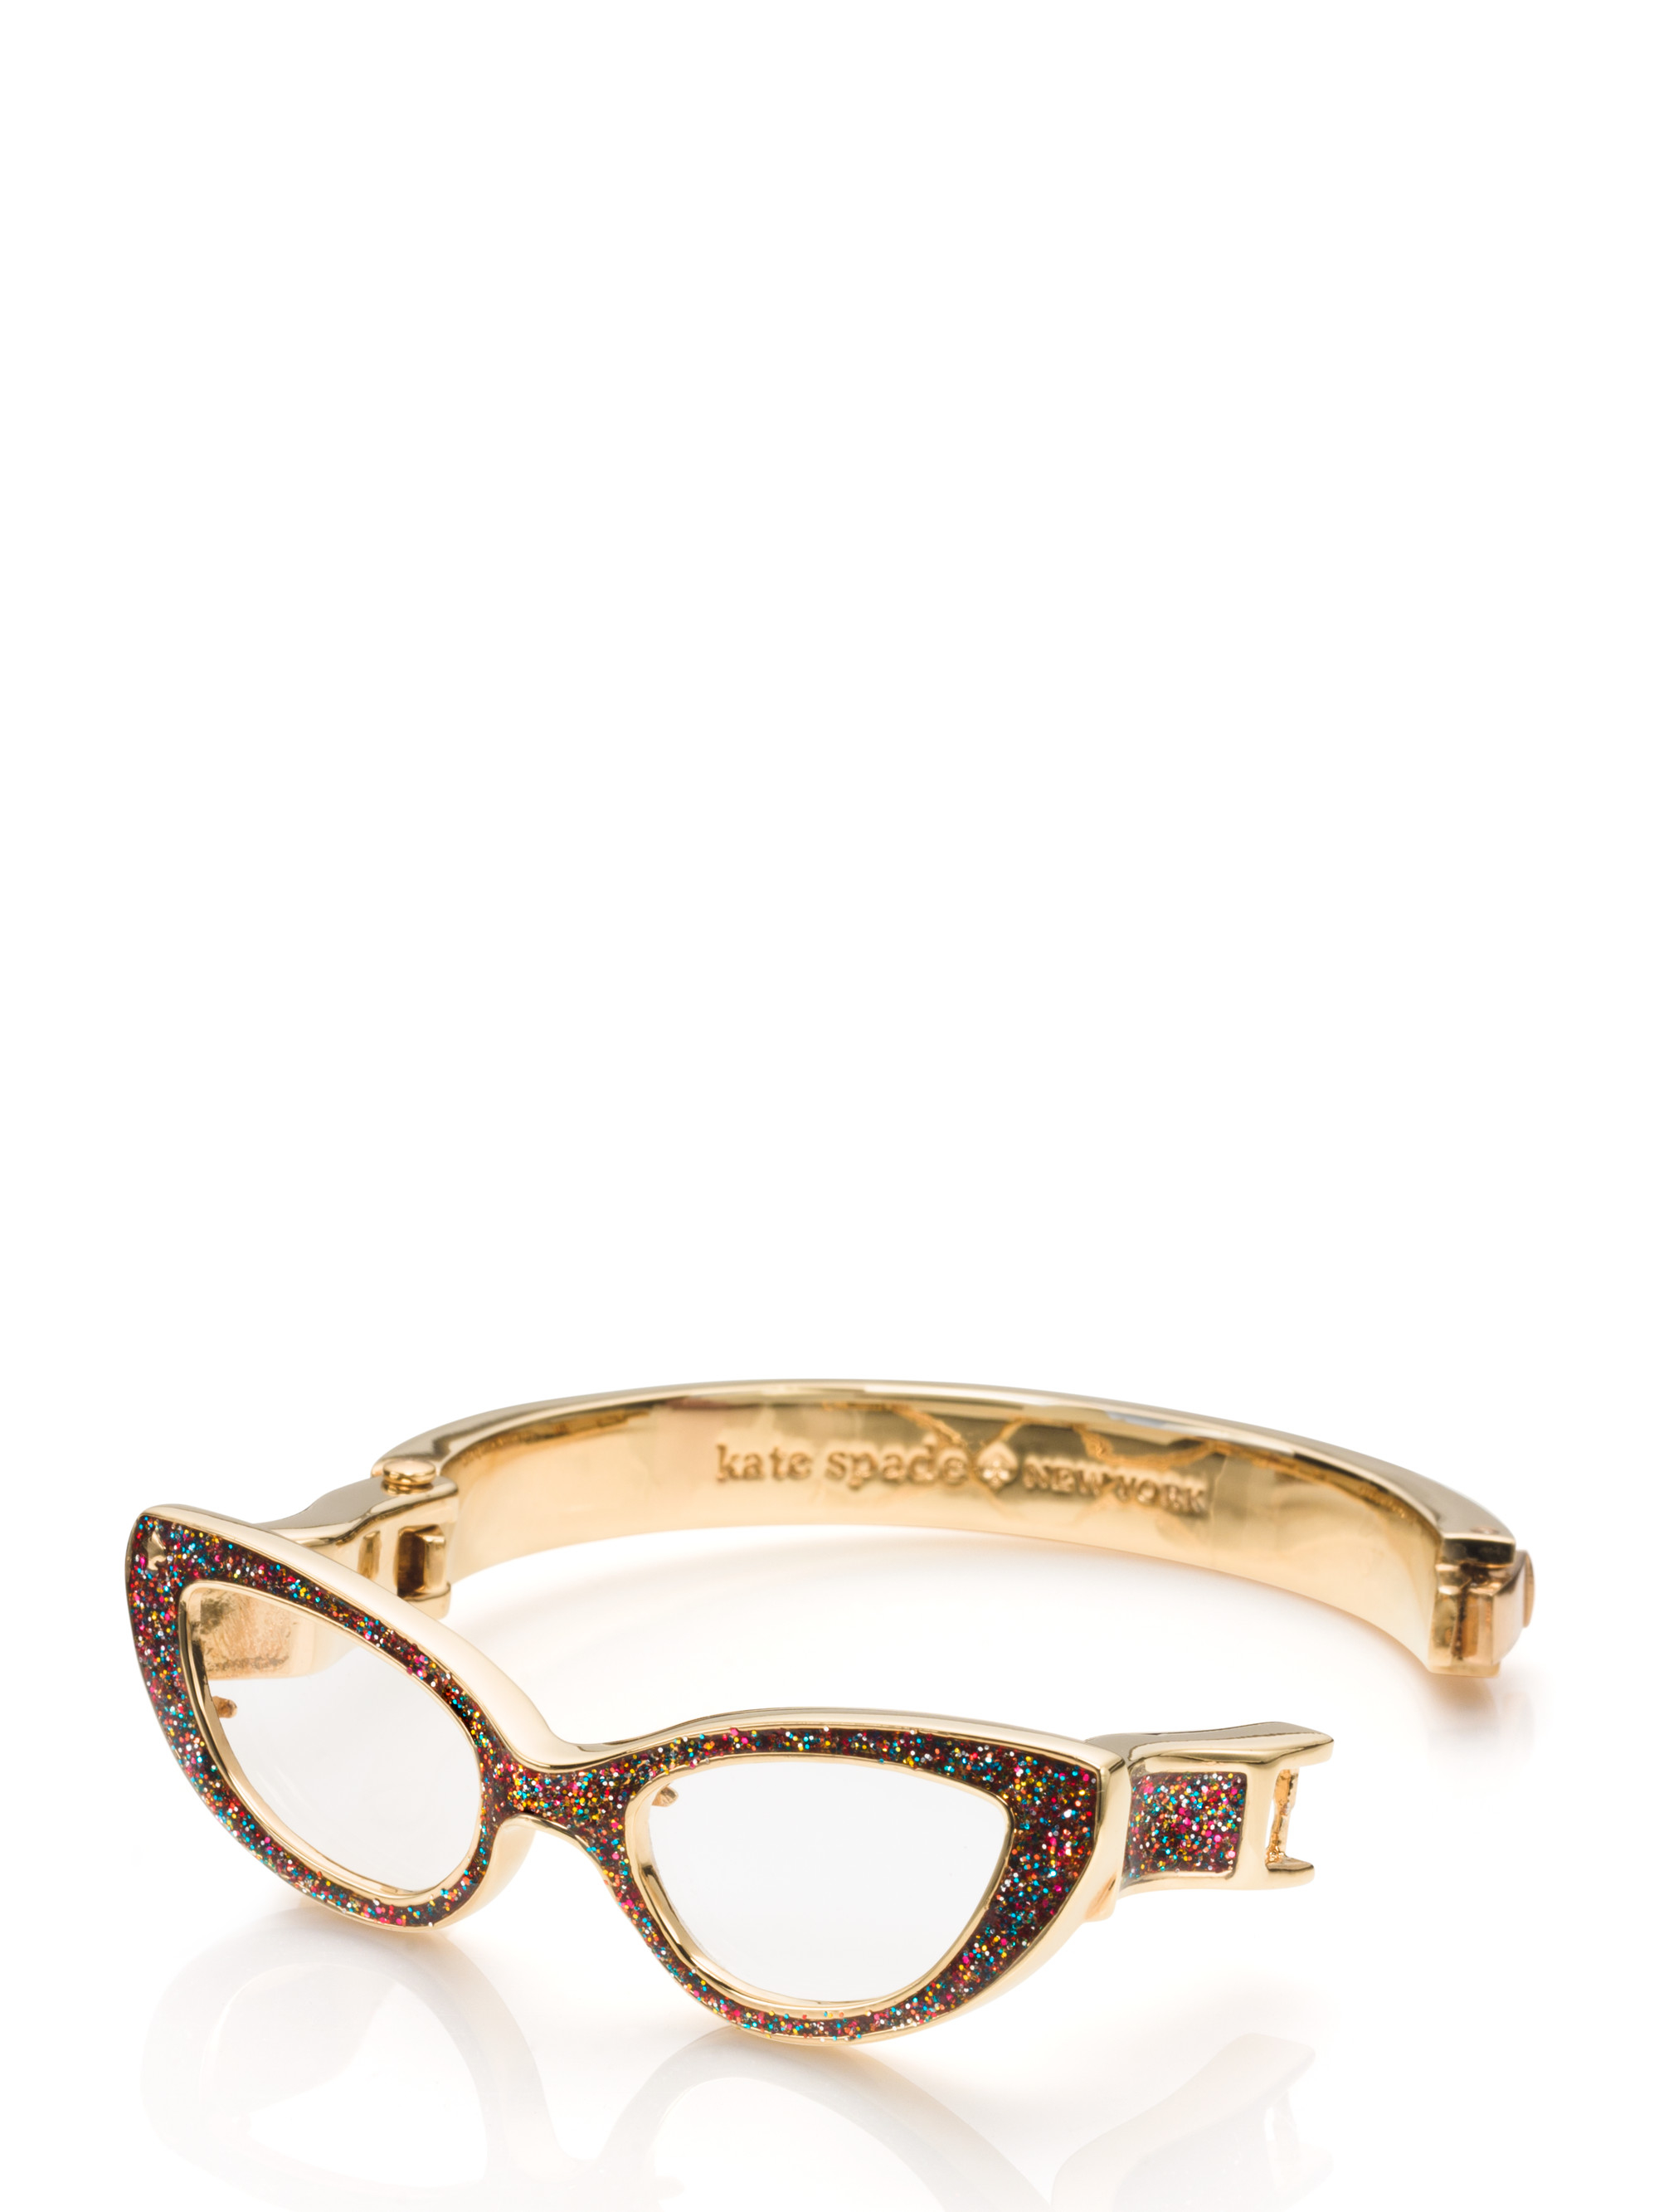 Lyst - Kate Spade Lookout Glasses Bangle